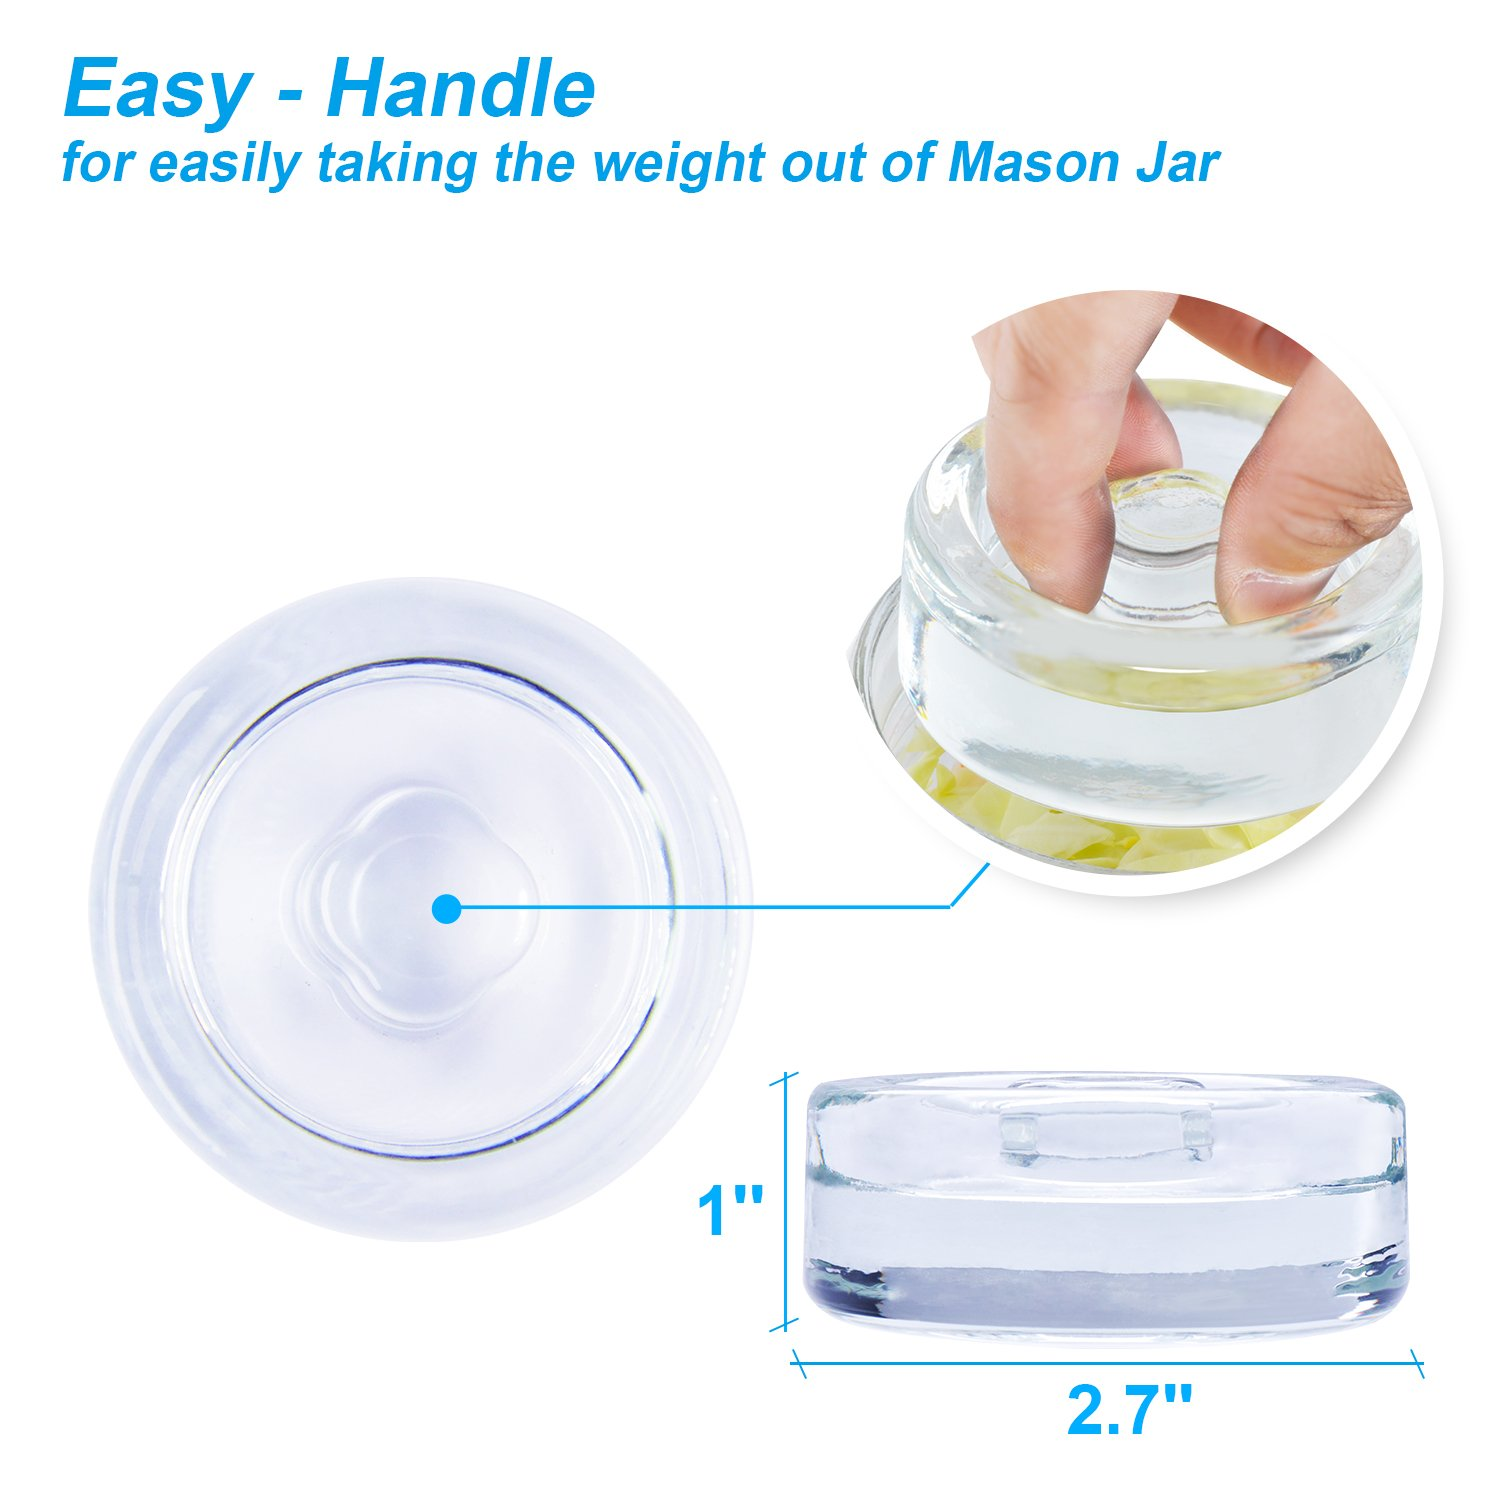 6-Pack Easy Fermentation Glass Weights with Handles for Keeping Vegetables Submerged During Fermenting and Pickling, Fits for Any Wide Mouth Mason Jars, FDA-Apporved Food Grade Materials by Siliware (Image #3)